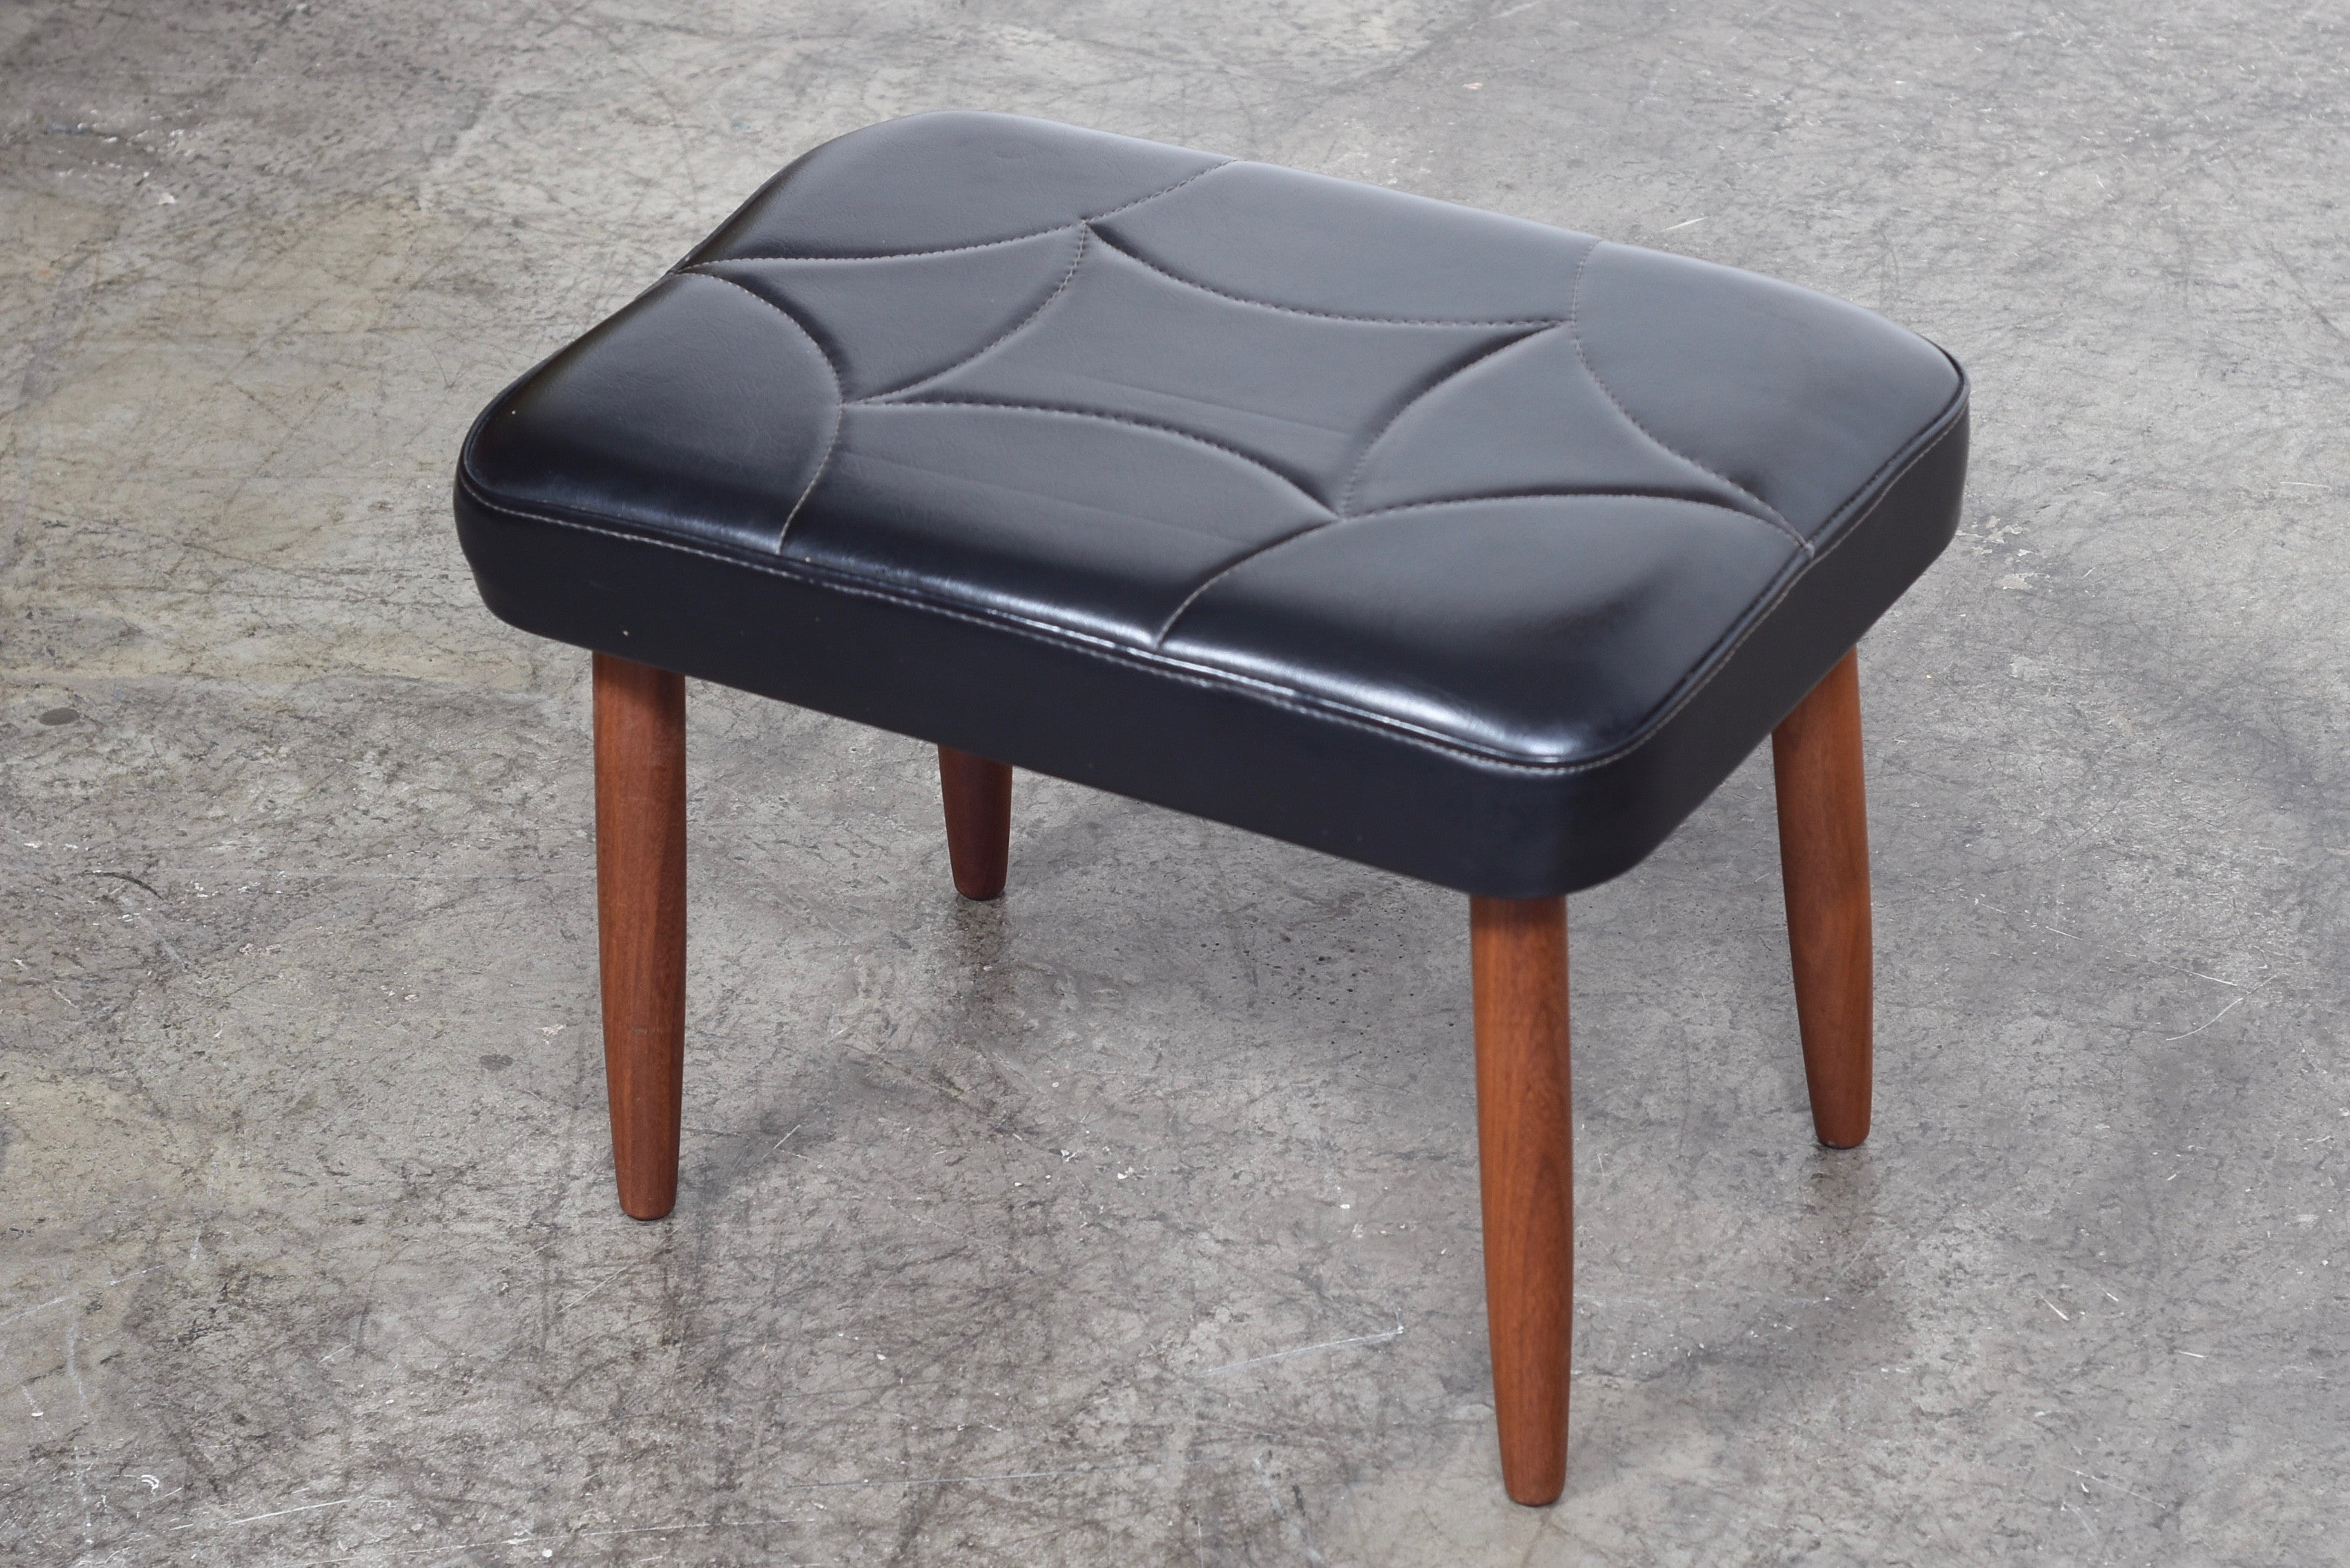 PrebenJune17 Two available: Skai foot stool with teak legs